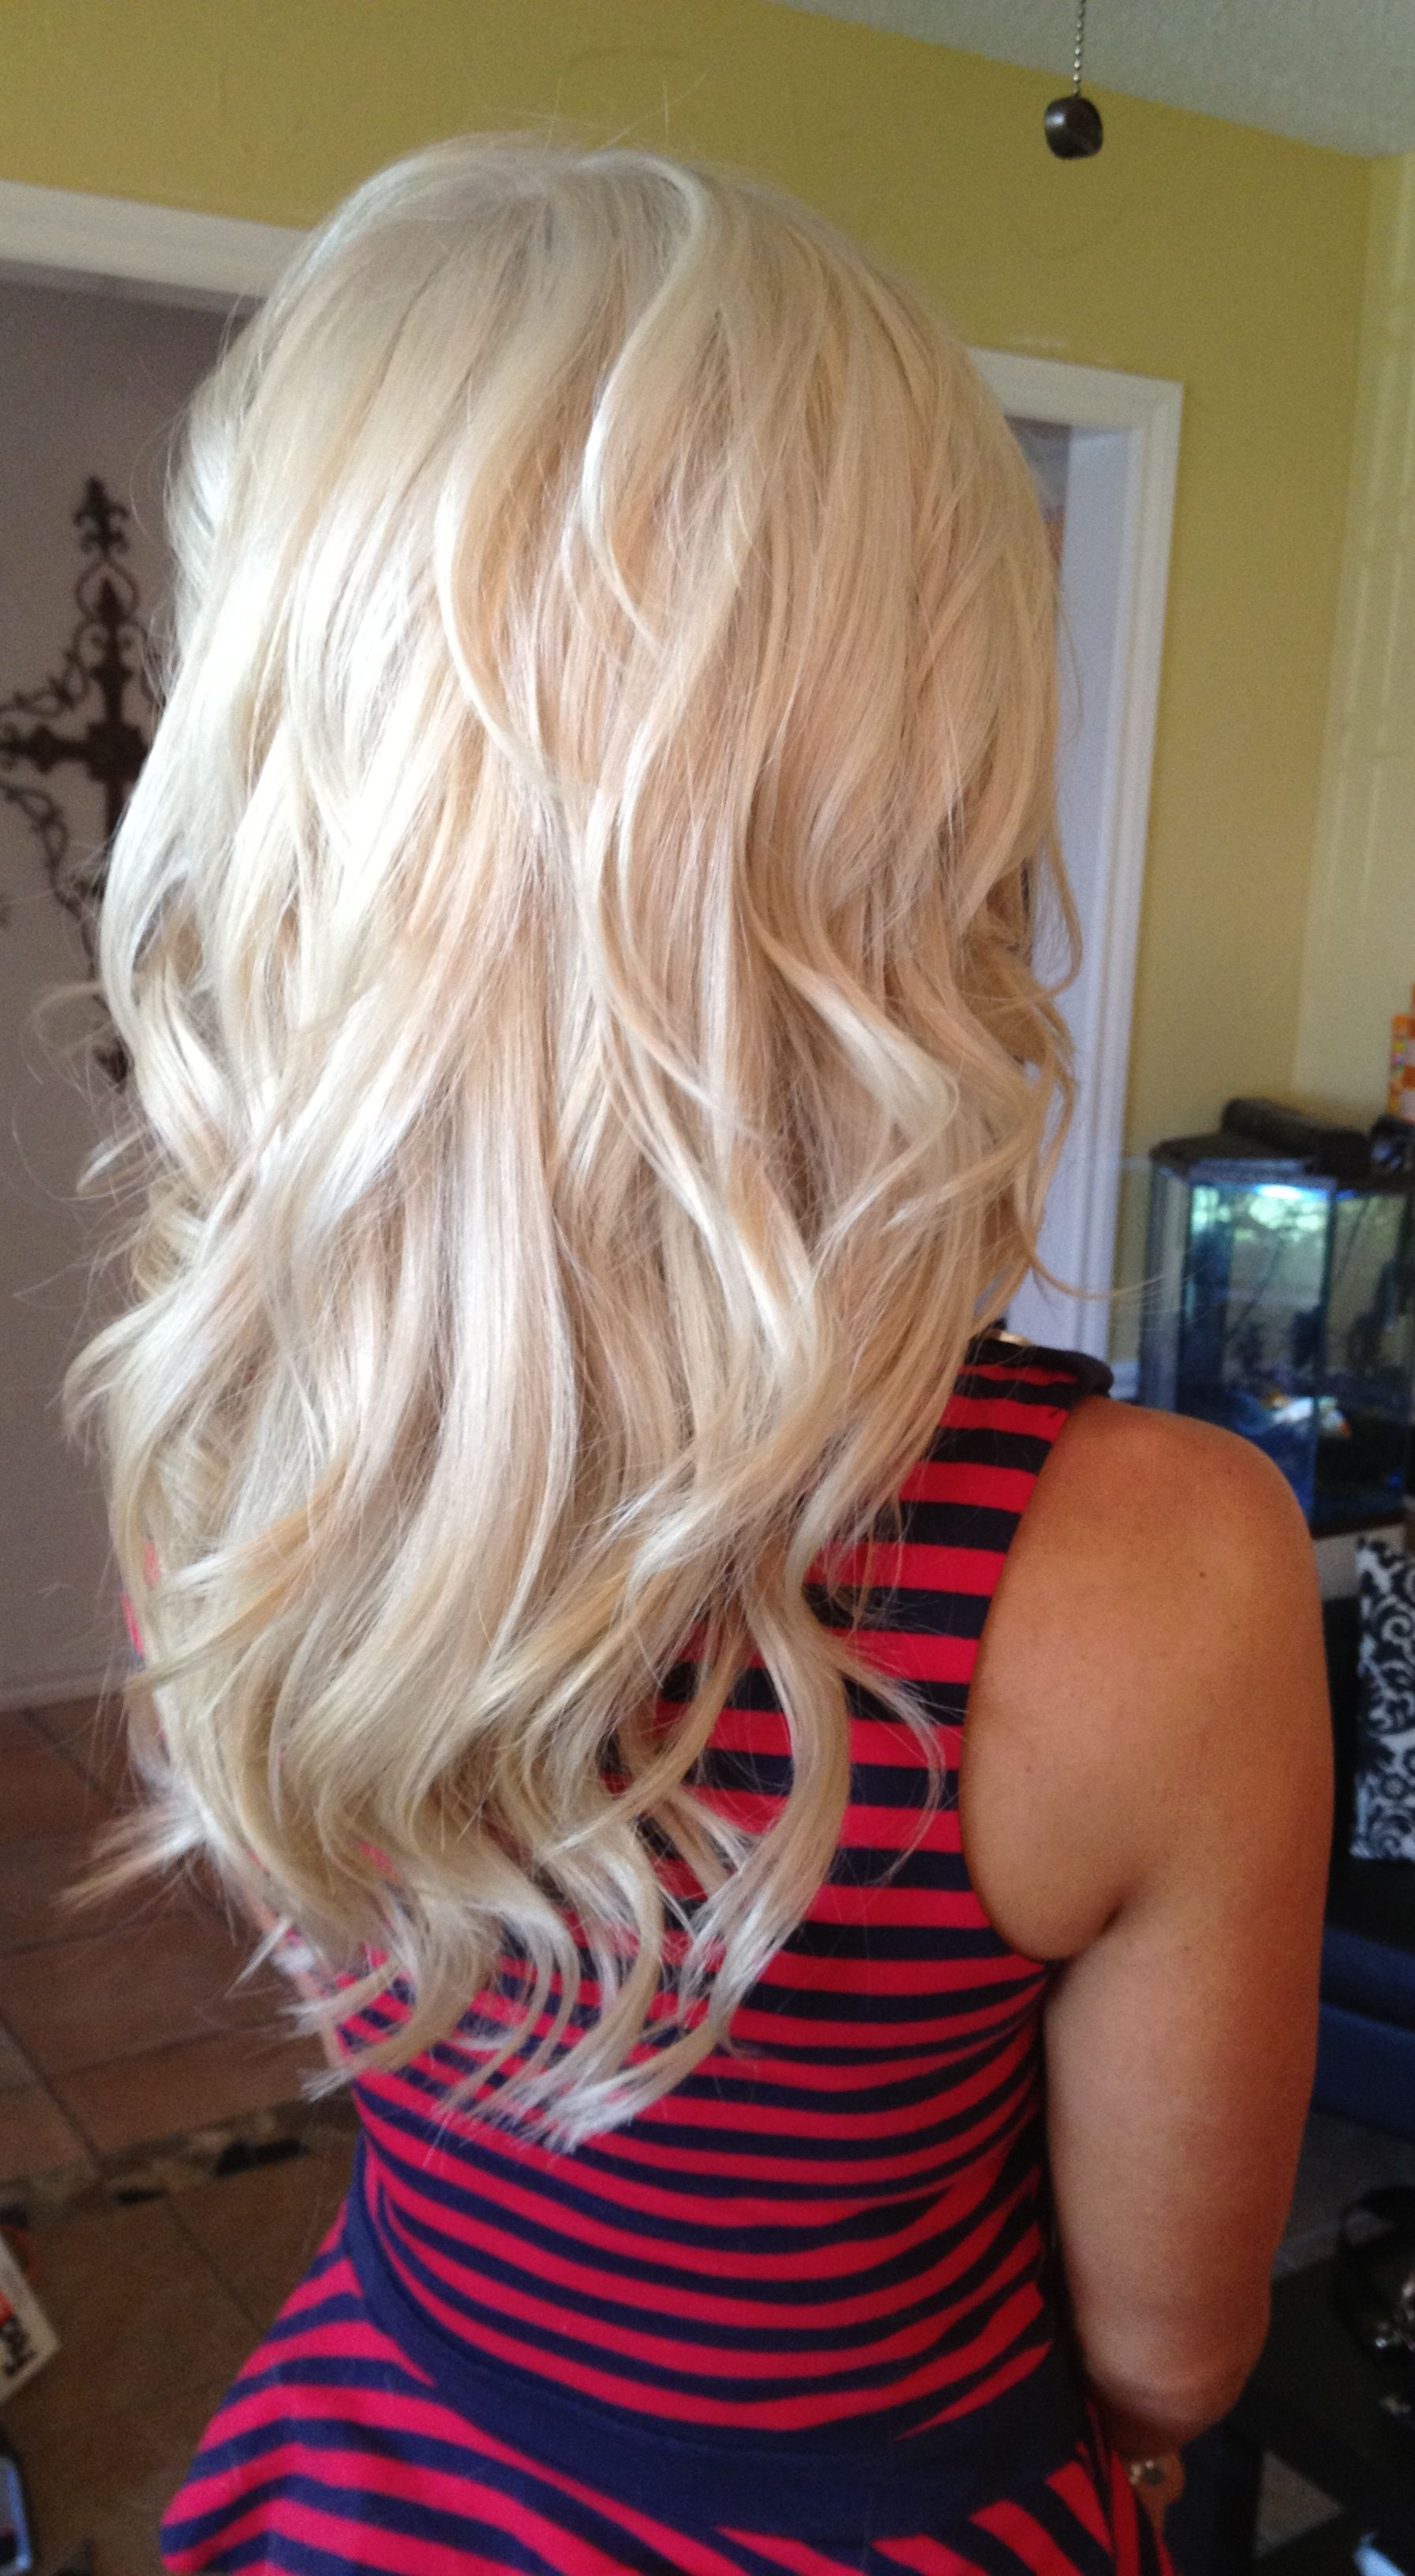 Gorgeous thick long blonde hair uc get this look with cliphair